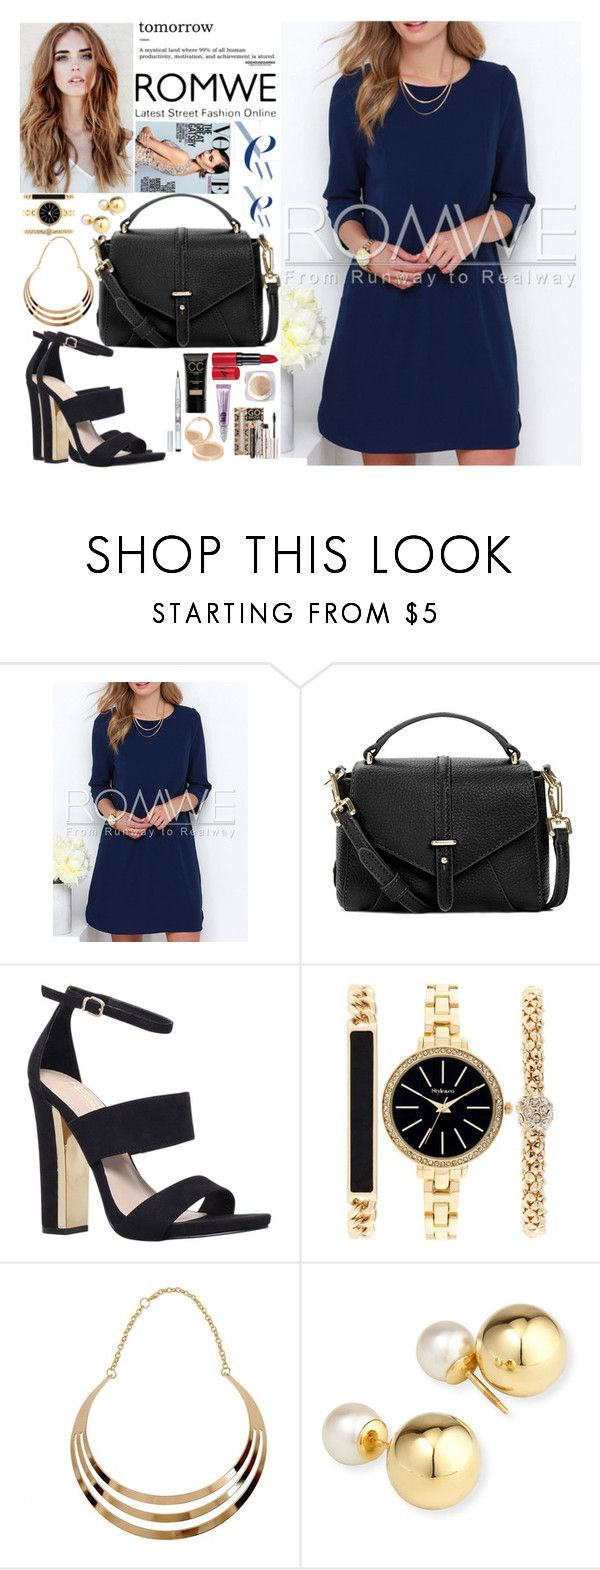 """Romwe, latest street fashion online <3"" by vicky1318 ❤ liked on Polyvore featuring Tory Burch, Carvela, Style & Co. and Yoko London"